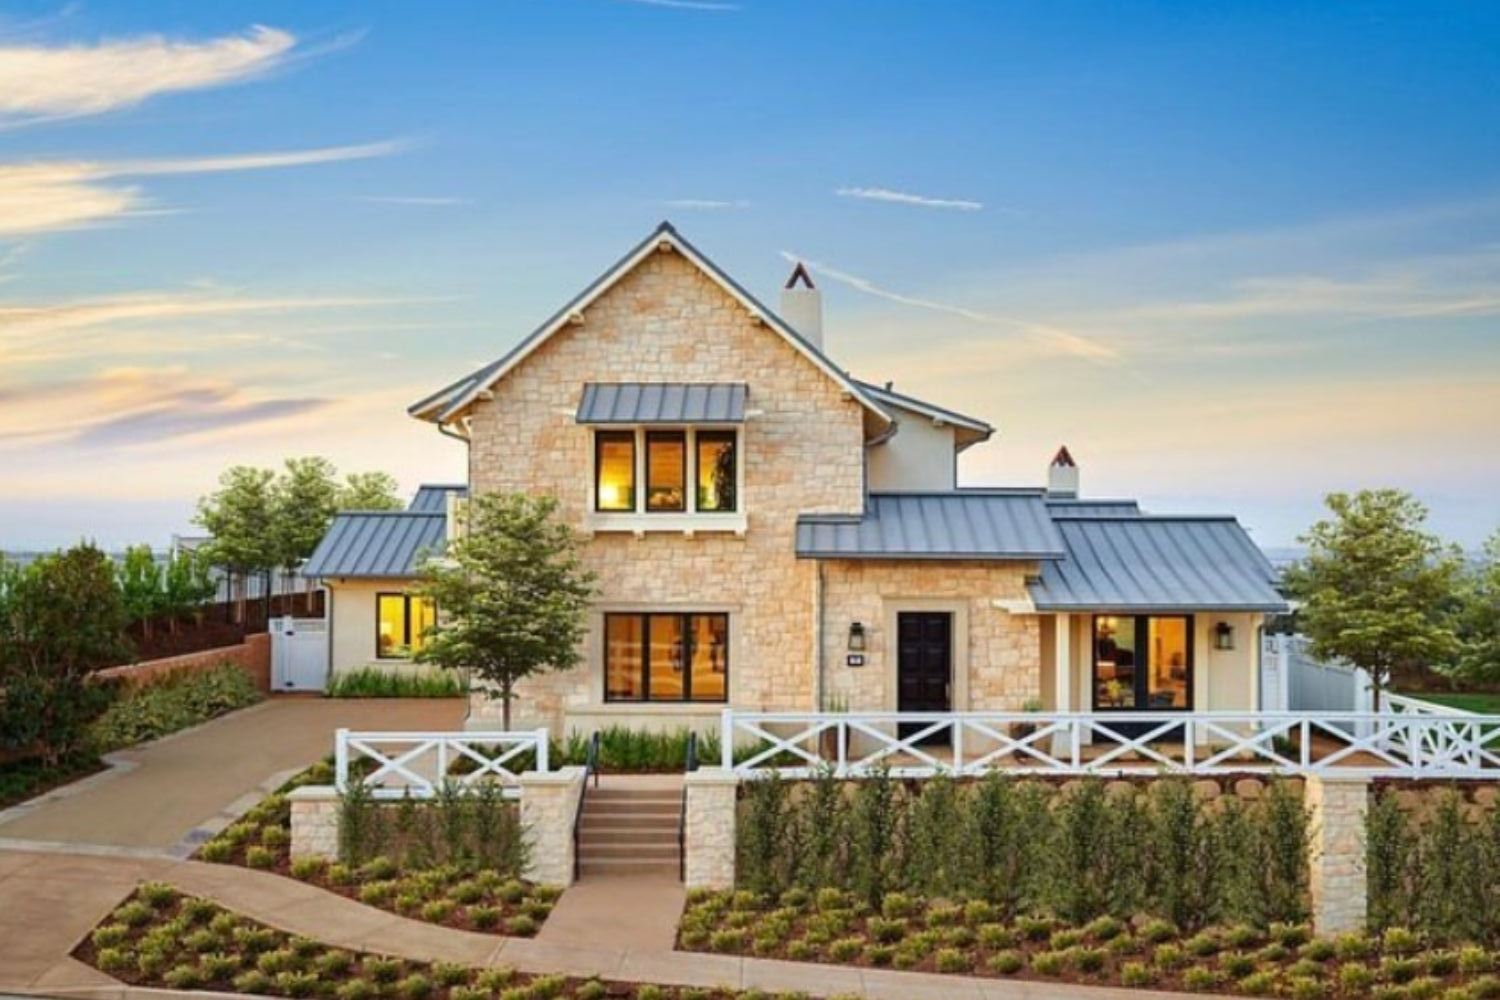 20 Ranch style house ideas to update your home